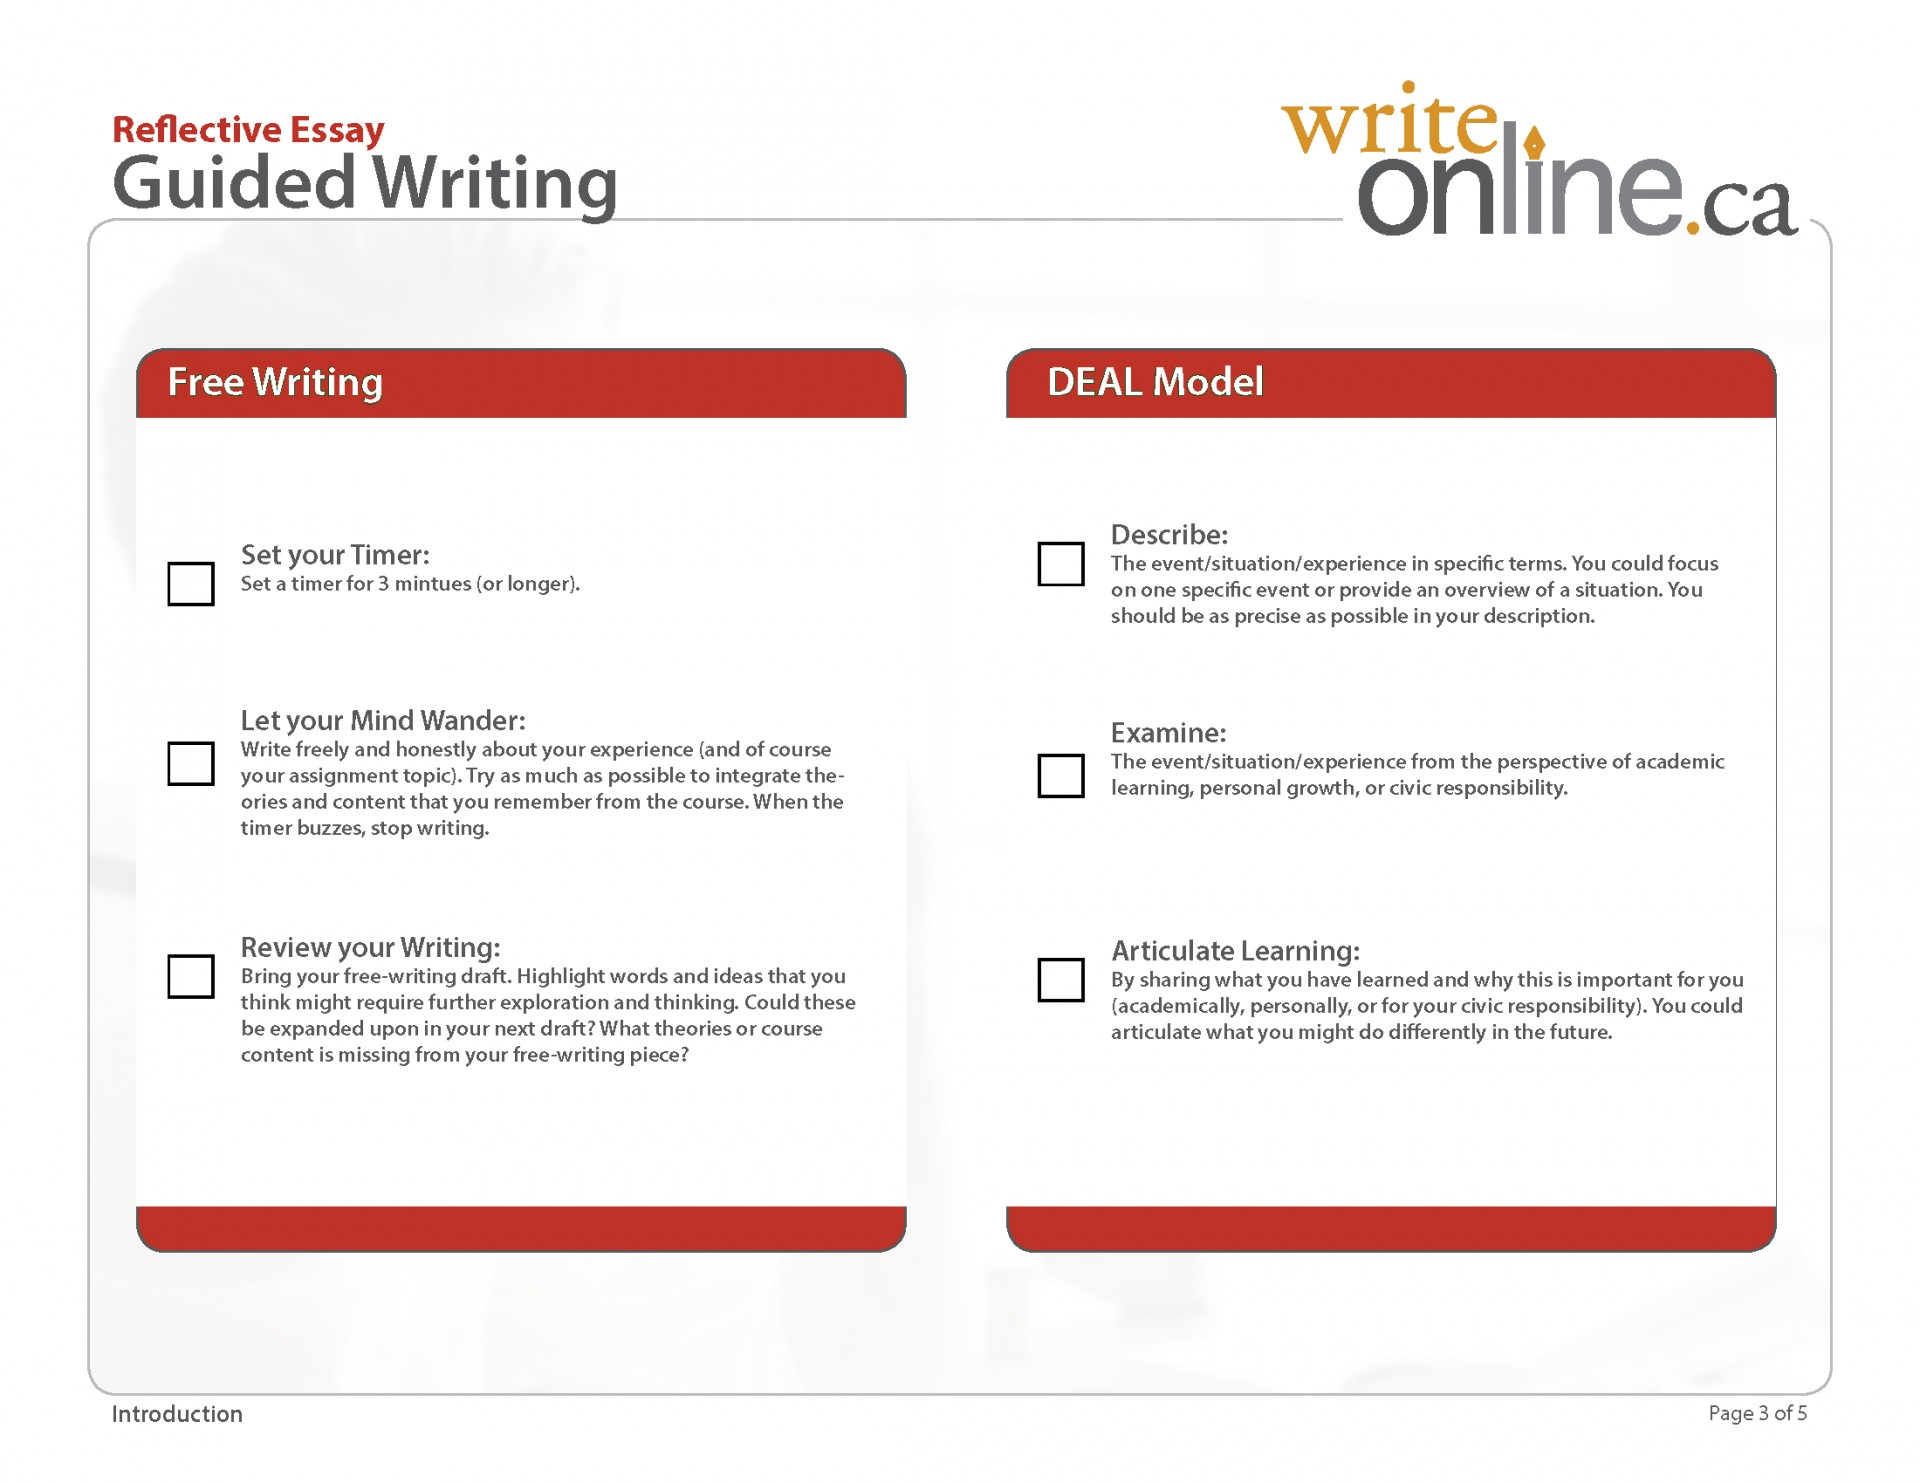 018 Promptchecklist Page 3 Essay Example Free Archaicawful Write Writing Prompts Examples Website To Essays 1920